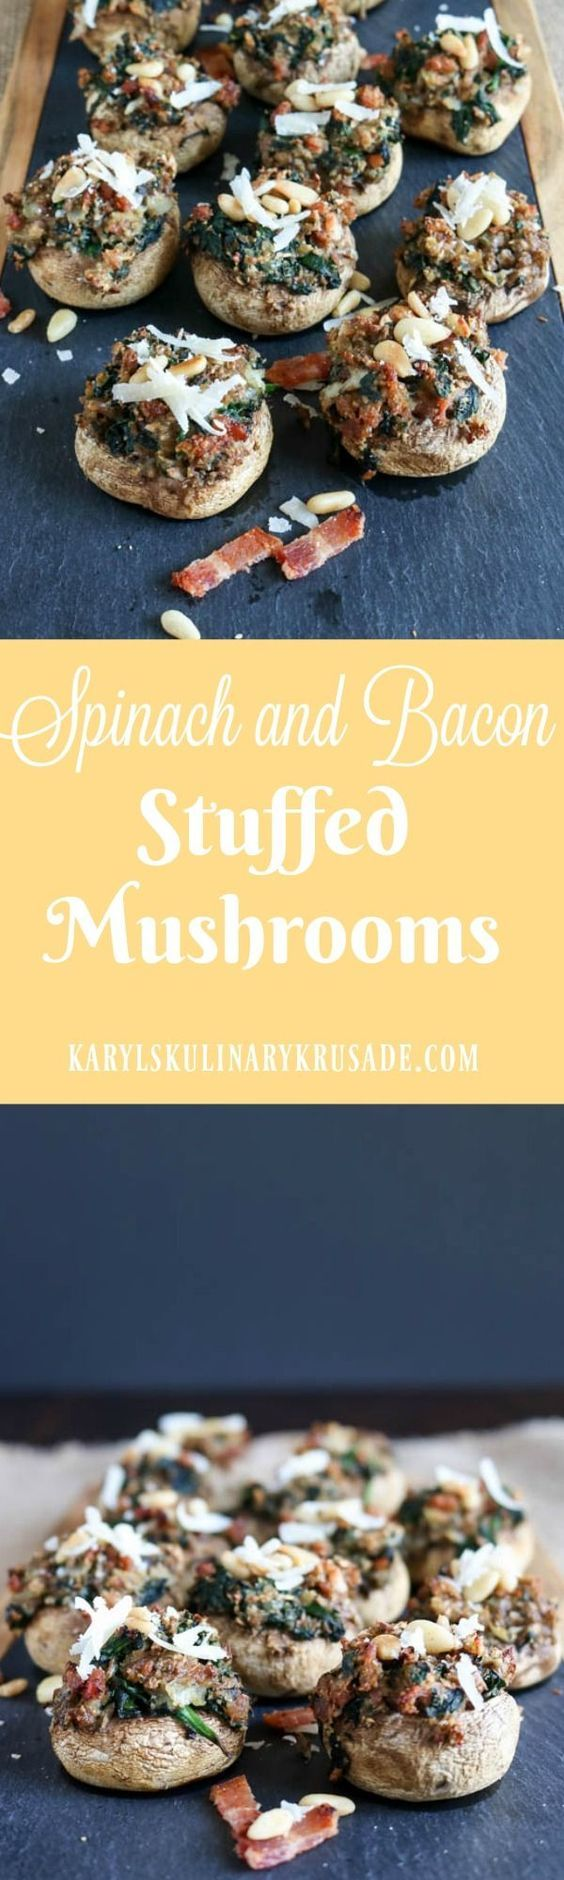 The hearty bites of goodness in these Spinach and Bacon Stuffed Mushrooms will make you the hit of your next party. Baby spinach, thick-cut bacon, fresh parmesan and toasted pine nuts create a wonderful combination